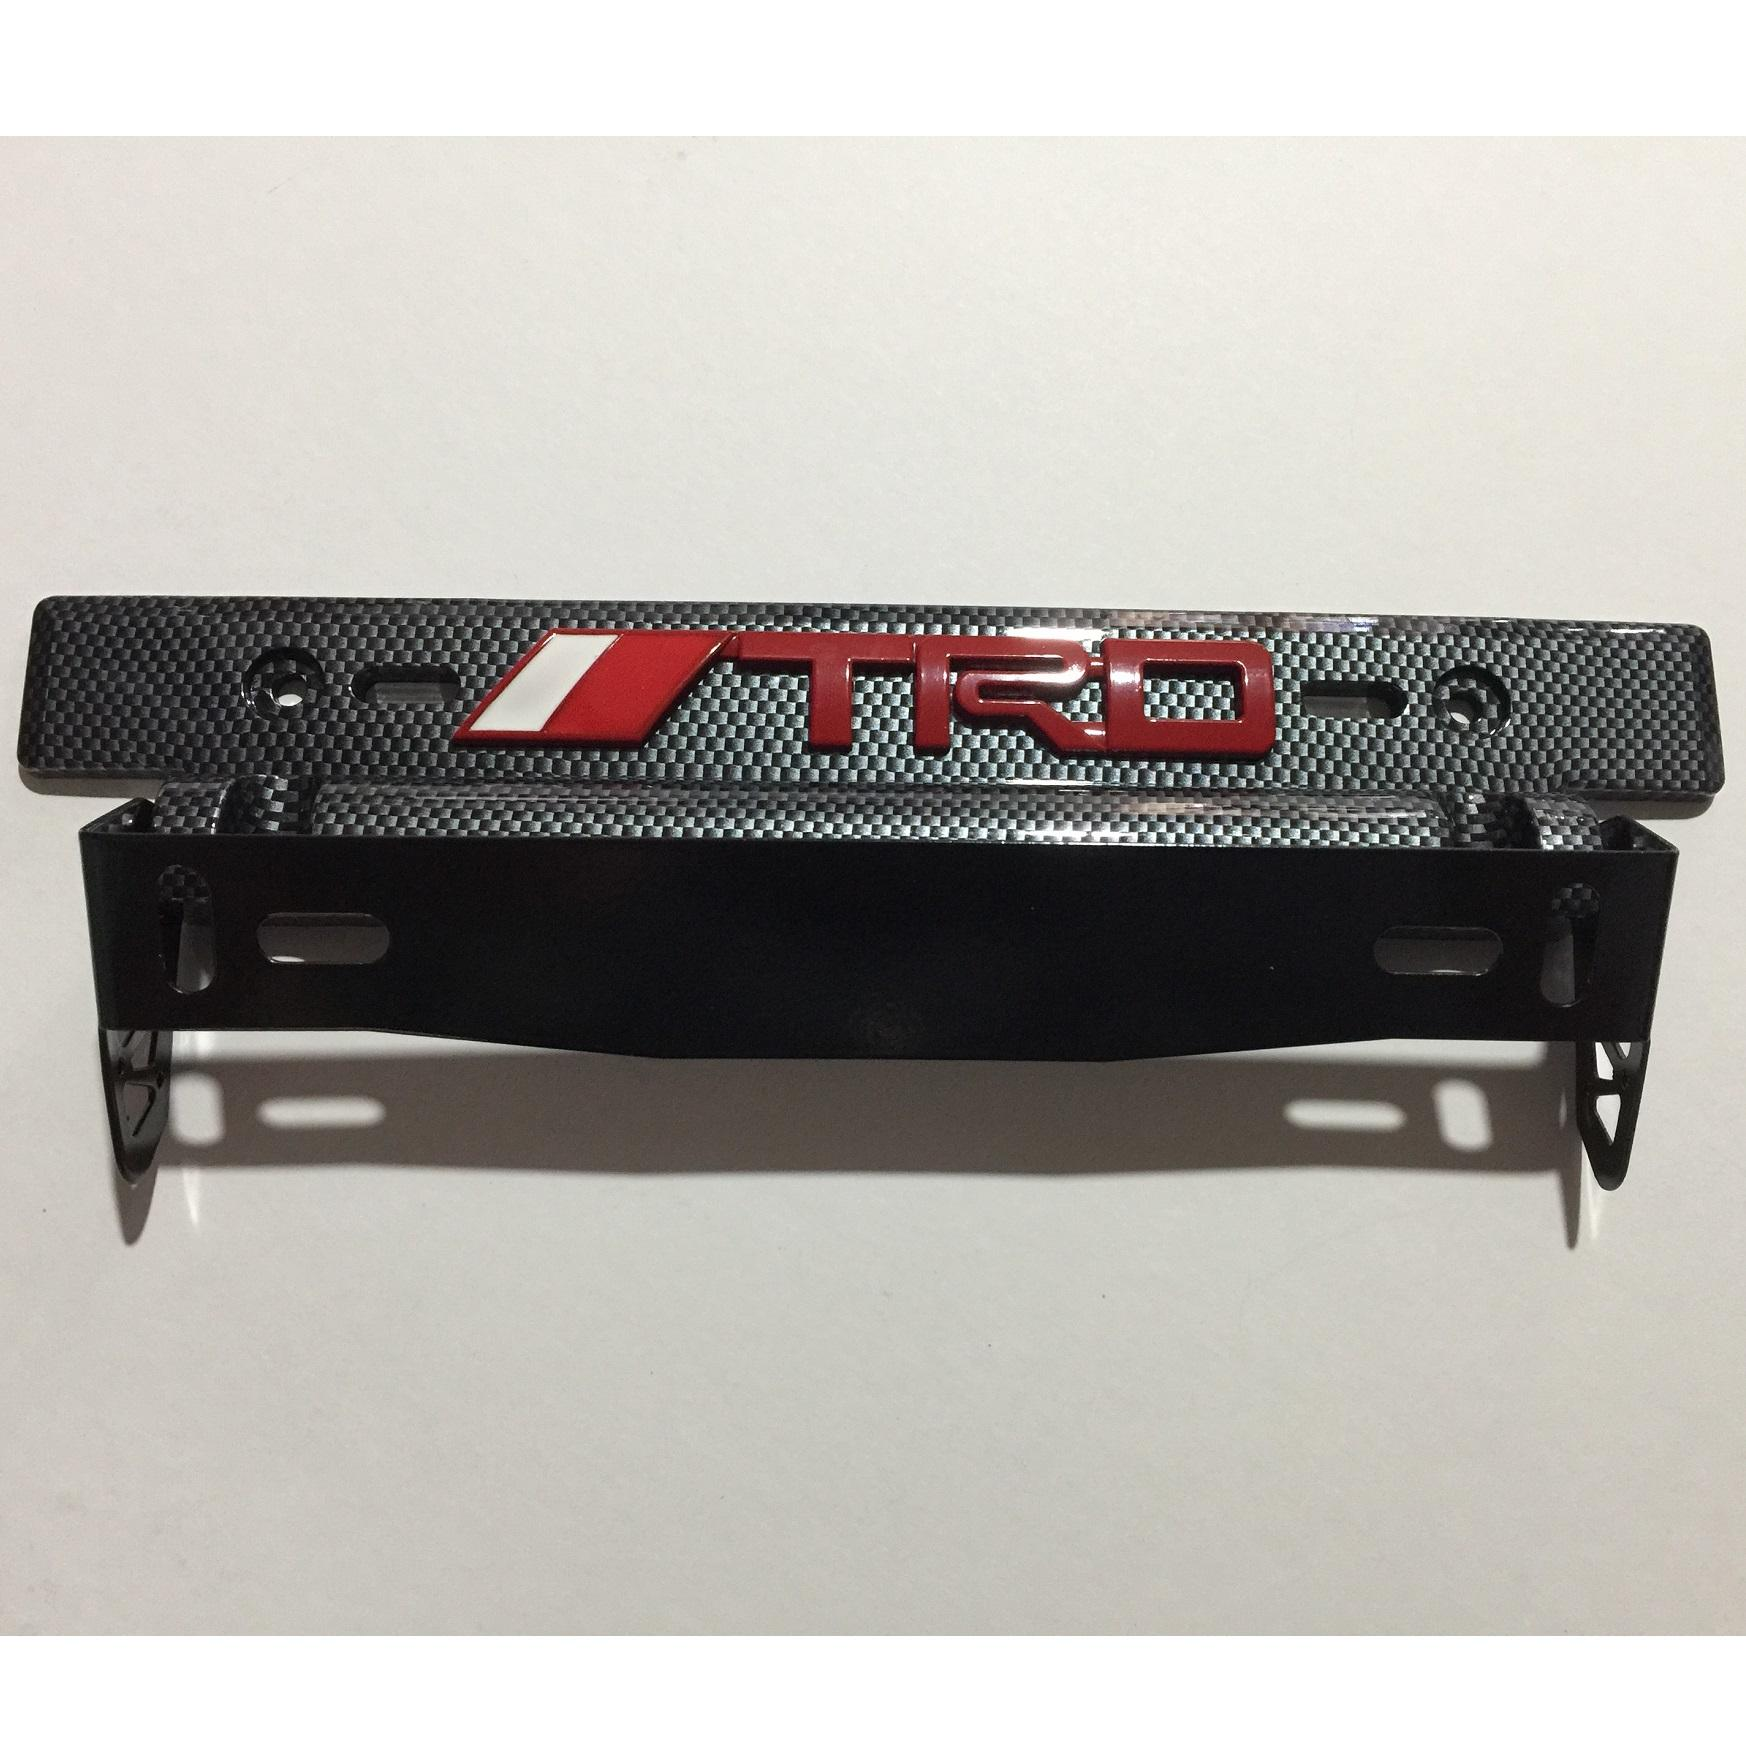 Car Tilting Plate Holder License Adjustable With 3d Emblem Metal Trd Red By Melonetshoppinas.